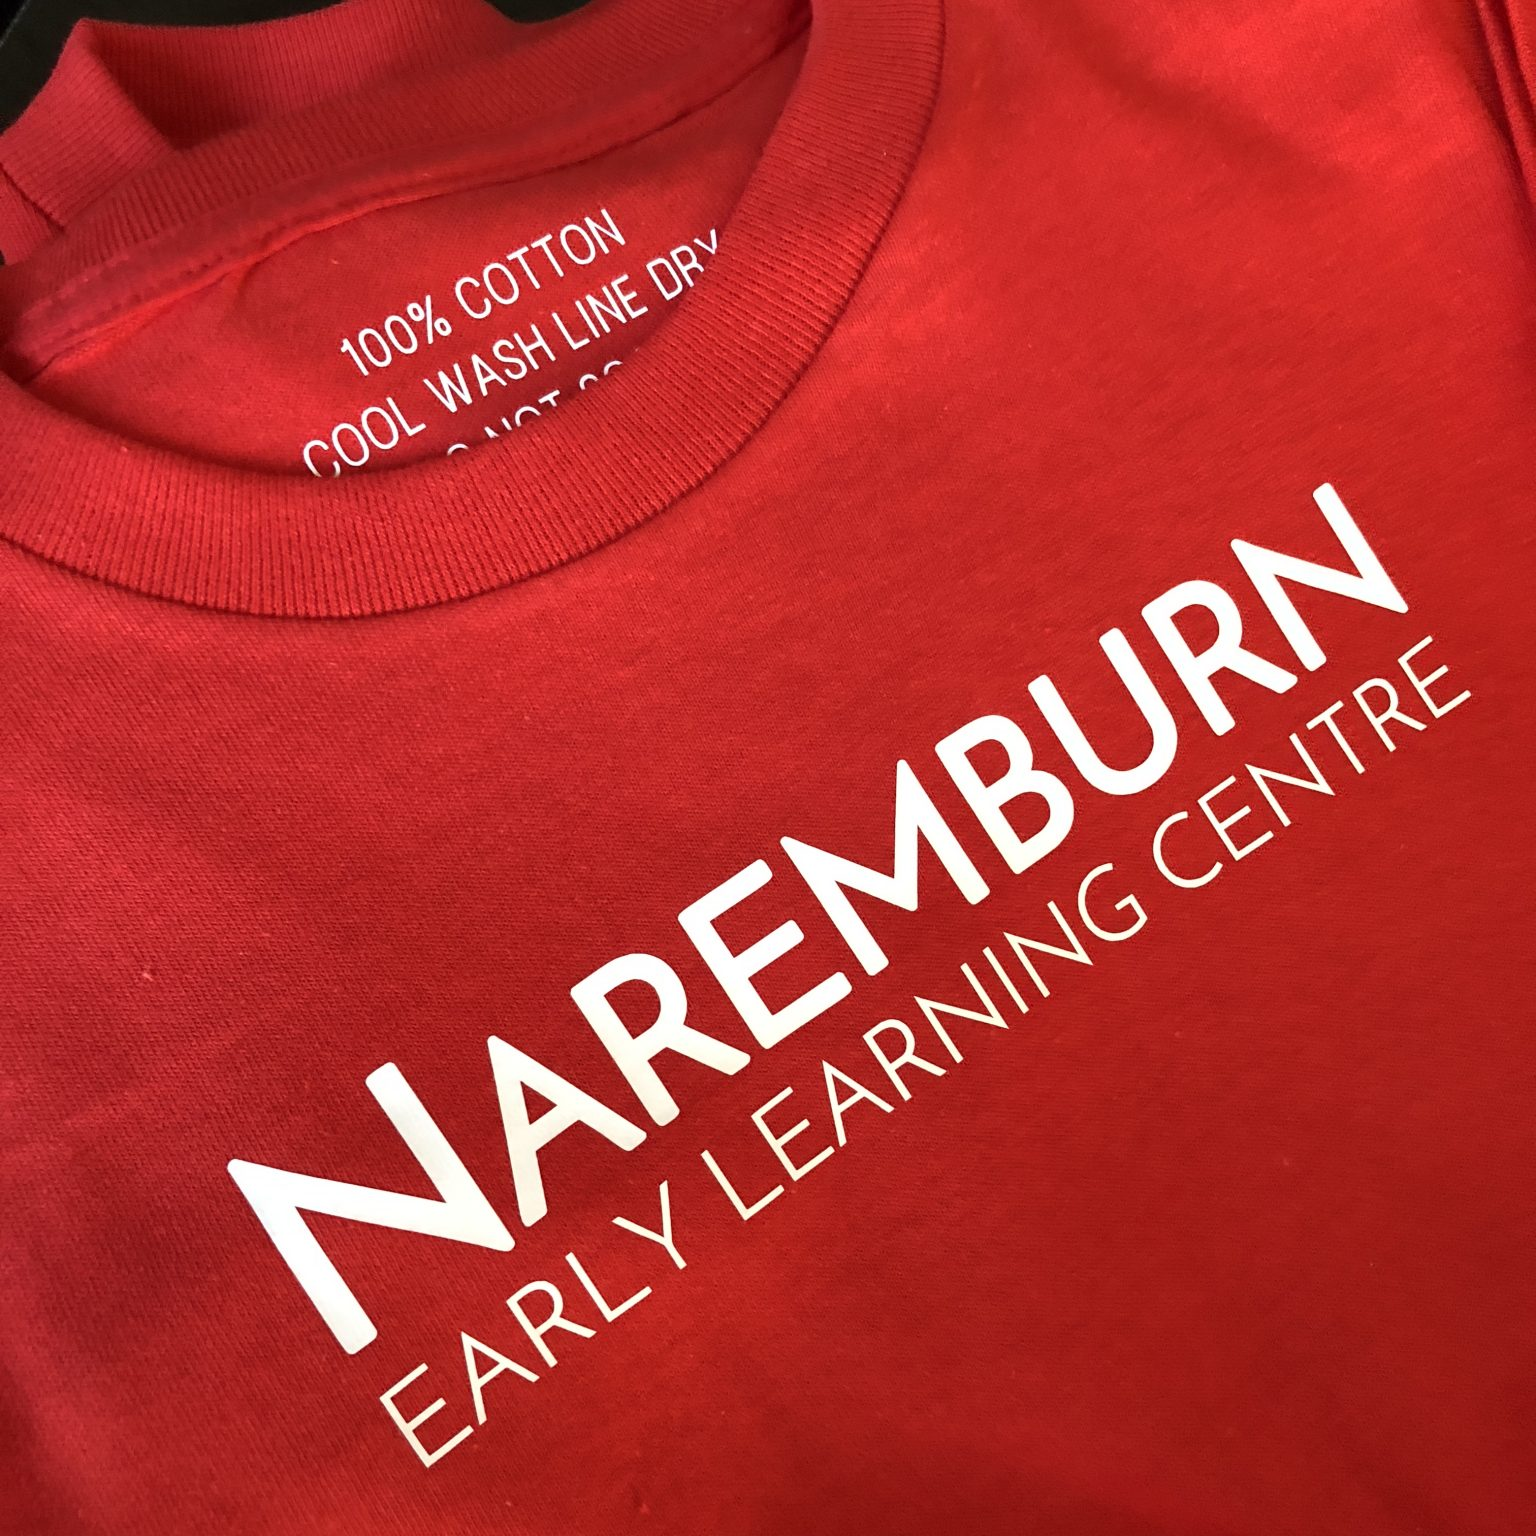 Pre-School Excursion T-Shirts for Early Childhood Education Centres